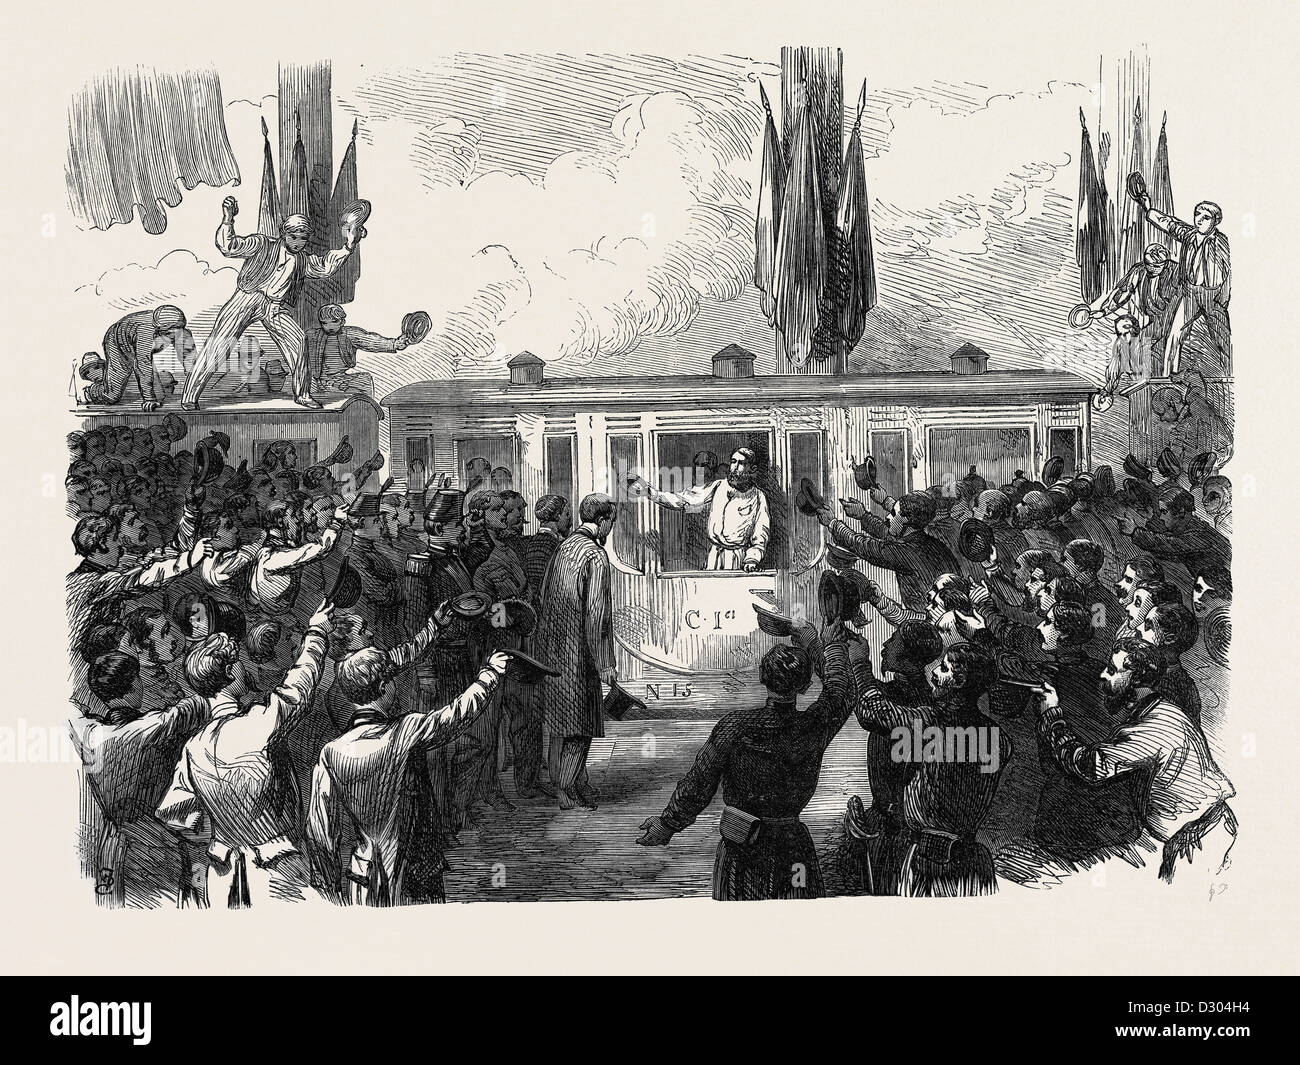 THE AUSTRO-PRUSSIAN WAR: ARRIVAL OF GARIBALDI AT THE MILAN RAILWAY STATION 1866 ITALY - Stock Image